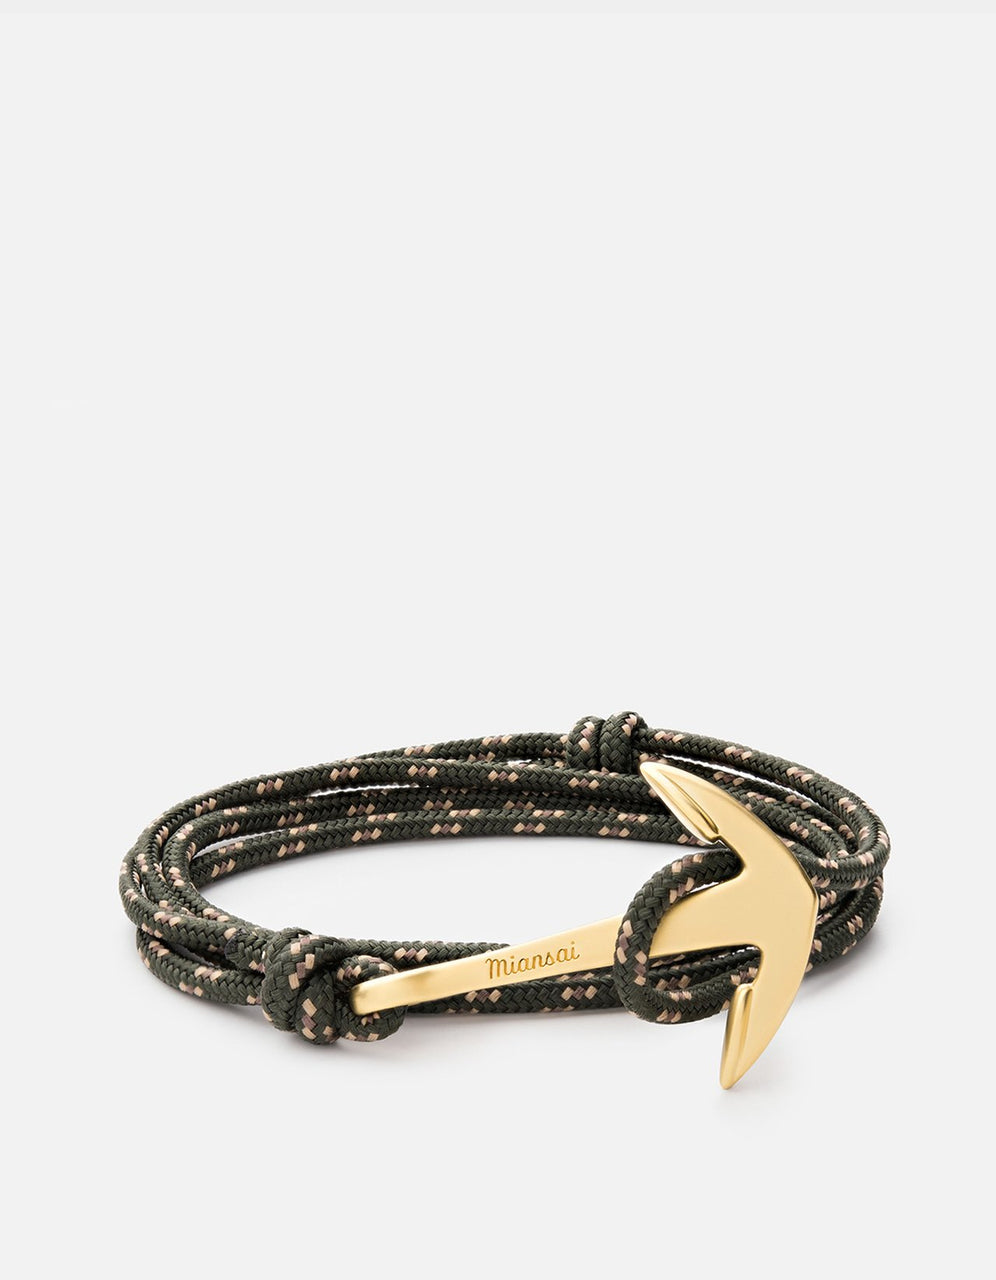 Anchor on Rope Bracelet, Brass, Hunter Green